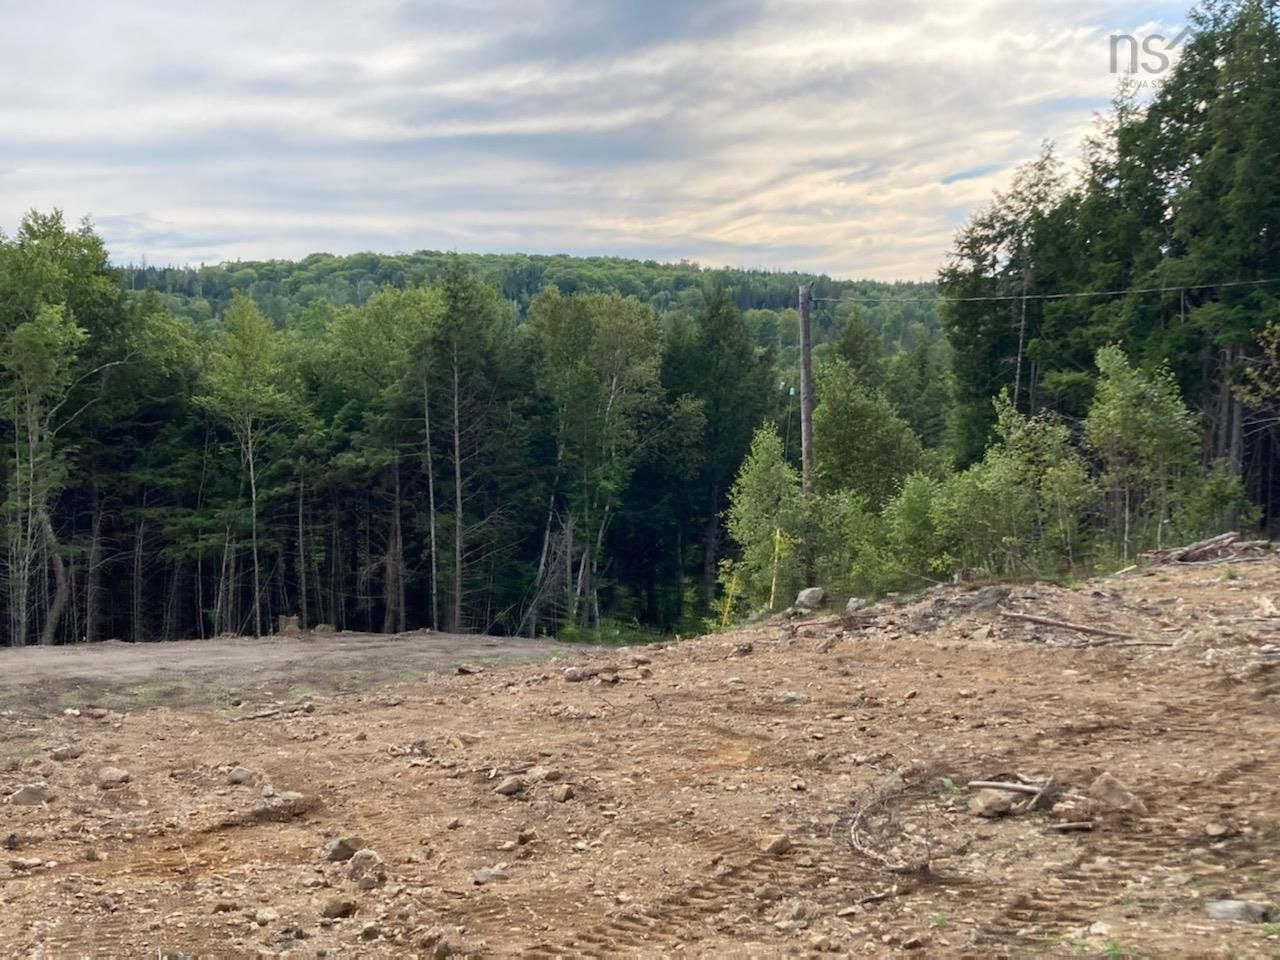 Main Photo: 1504 Greenvale Road in Macphersons Mills: 108-Rural Pictou County Vacant Land for sale (Northern Region)  : MLS®# 202122532